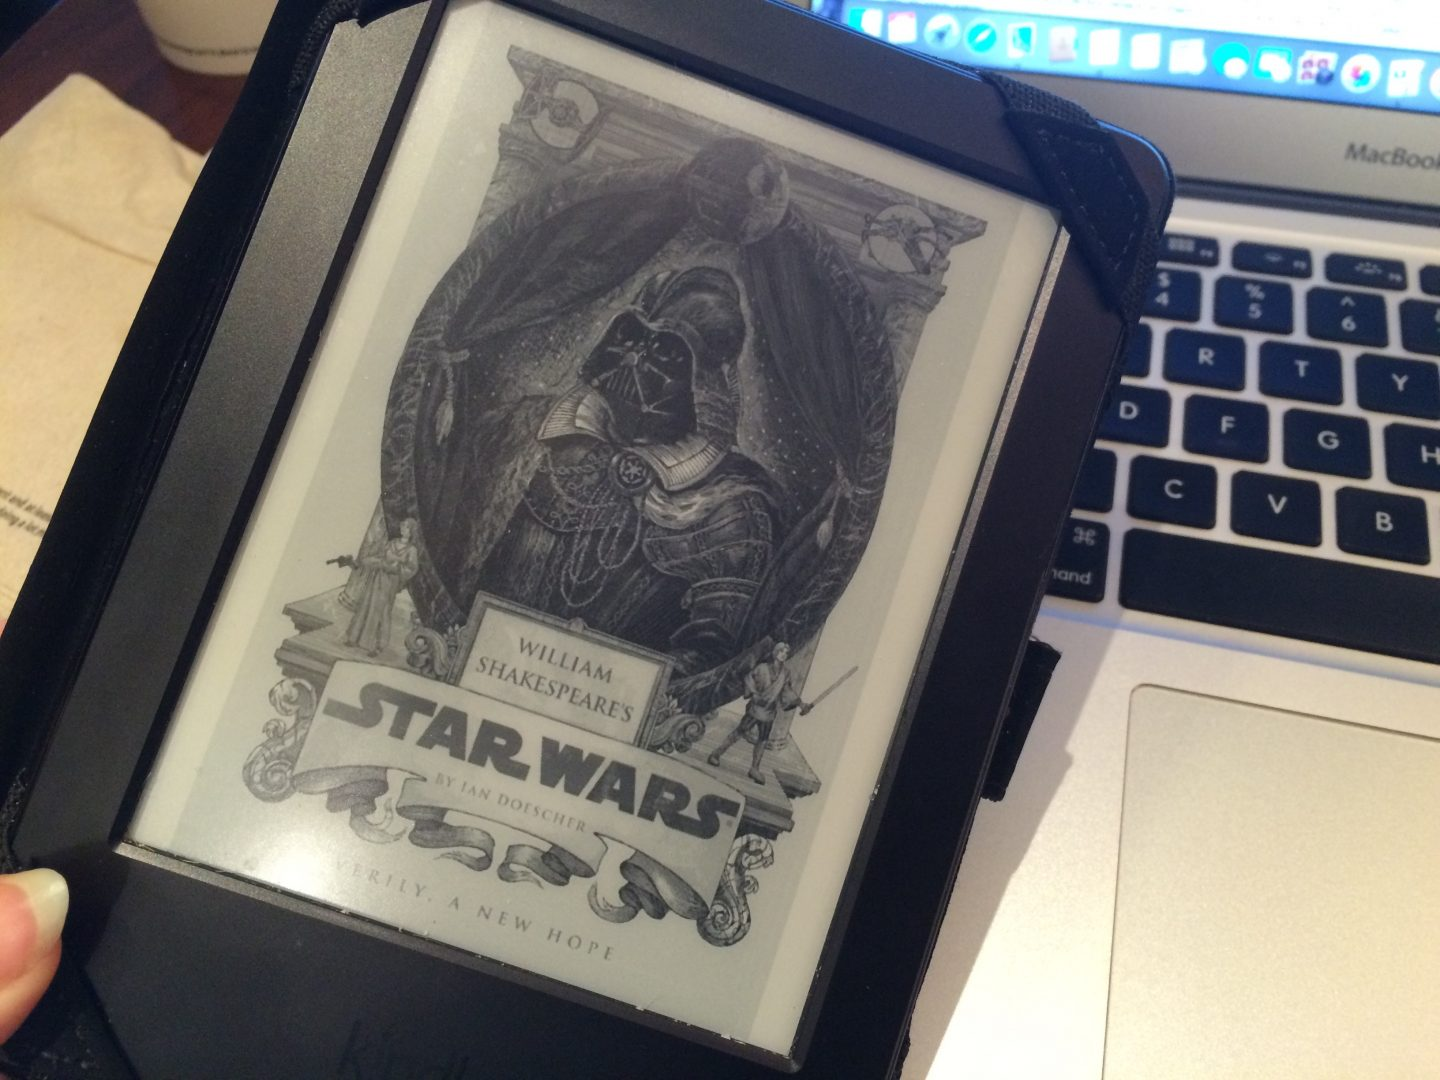 William Shakespeare's Star Wars: Verily, A New Hope (William Shakespeare's Star Wars #4) by Ian Doescher Review